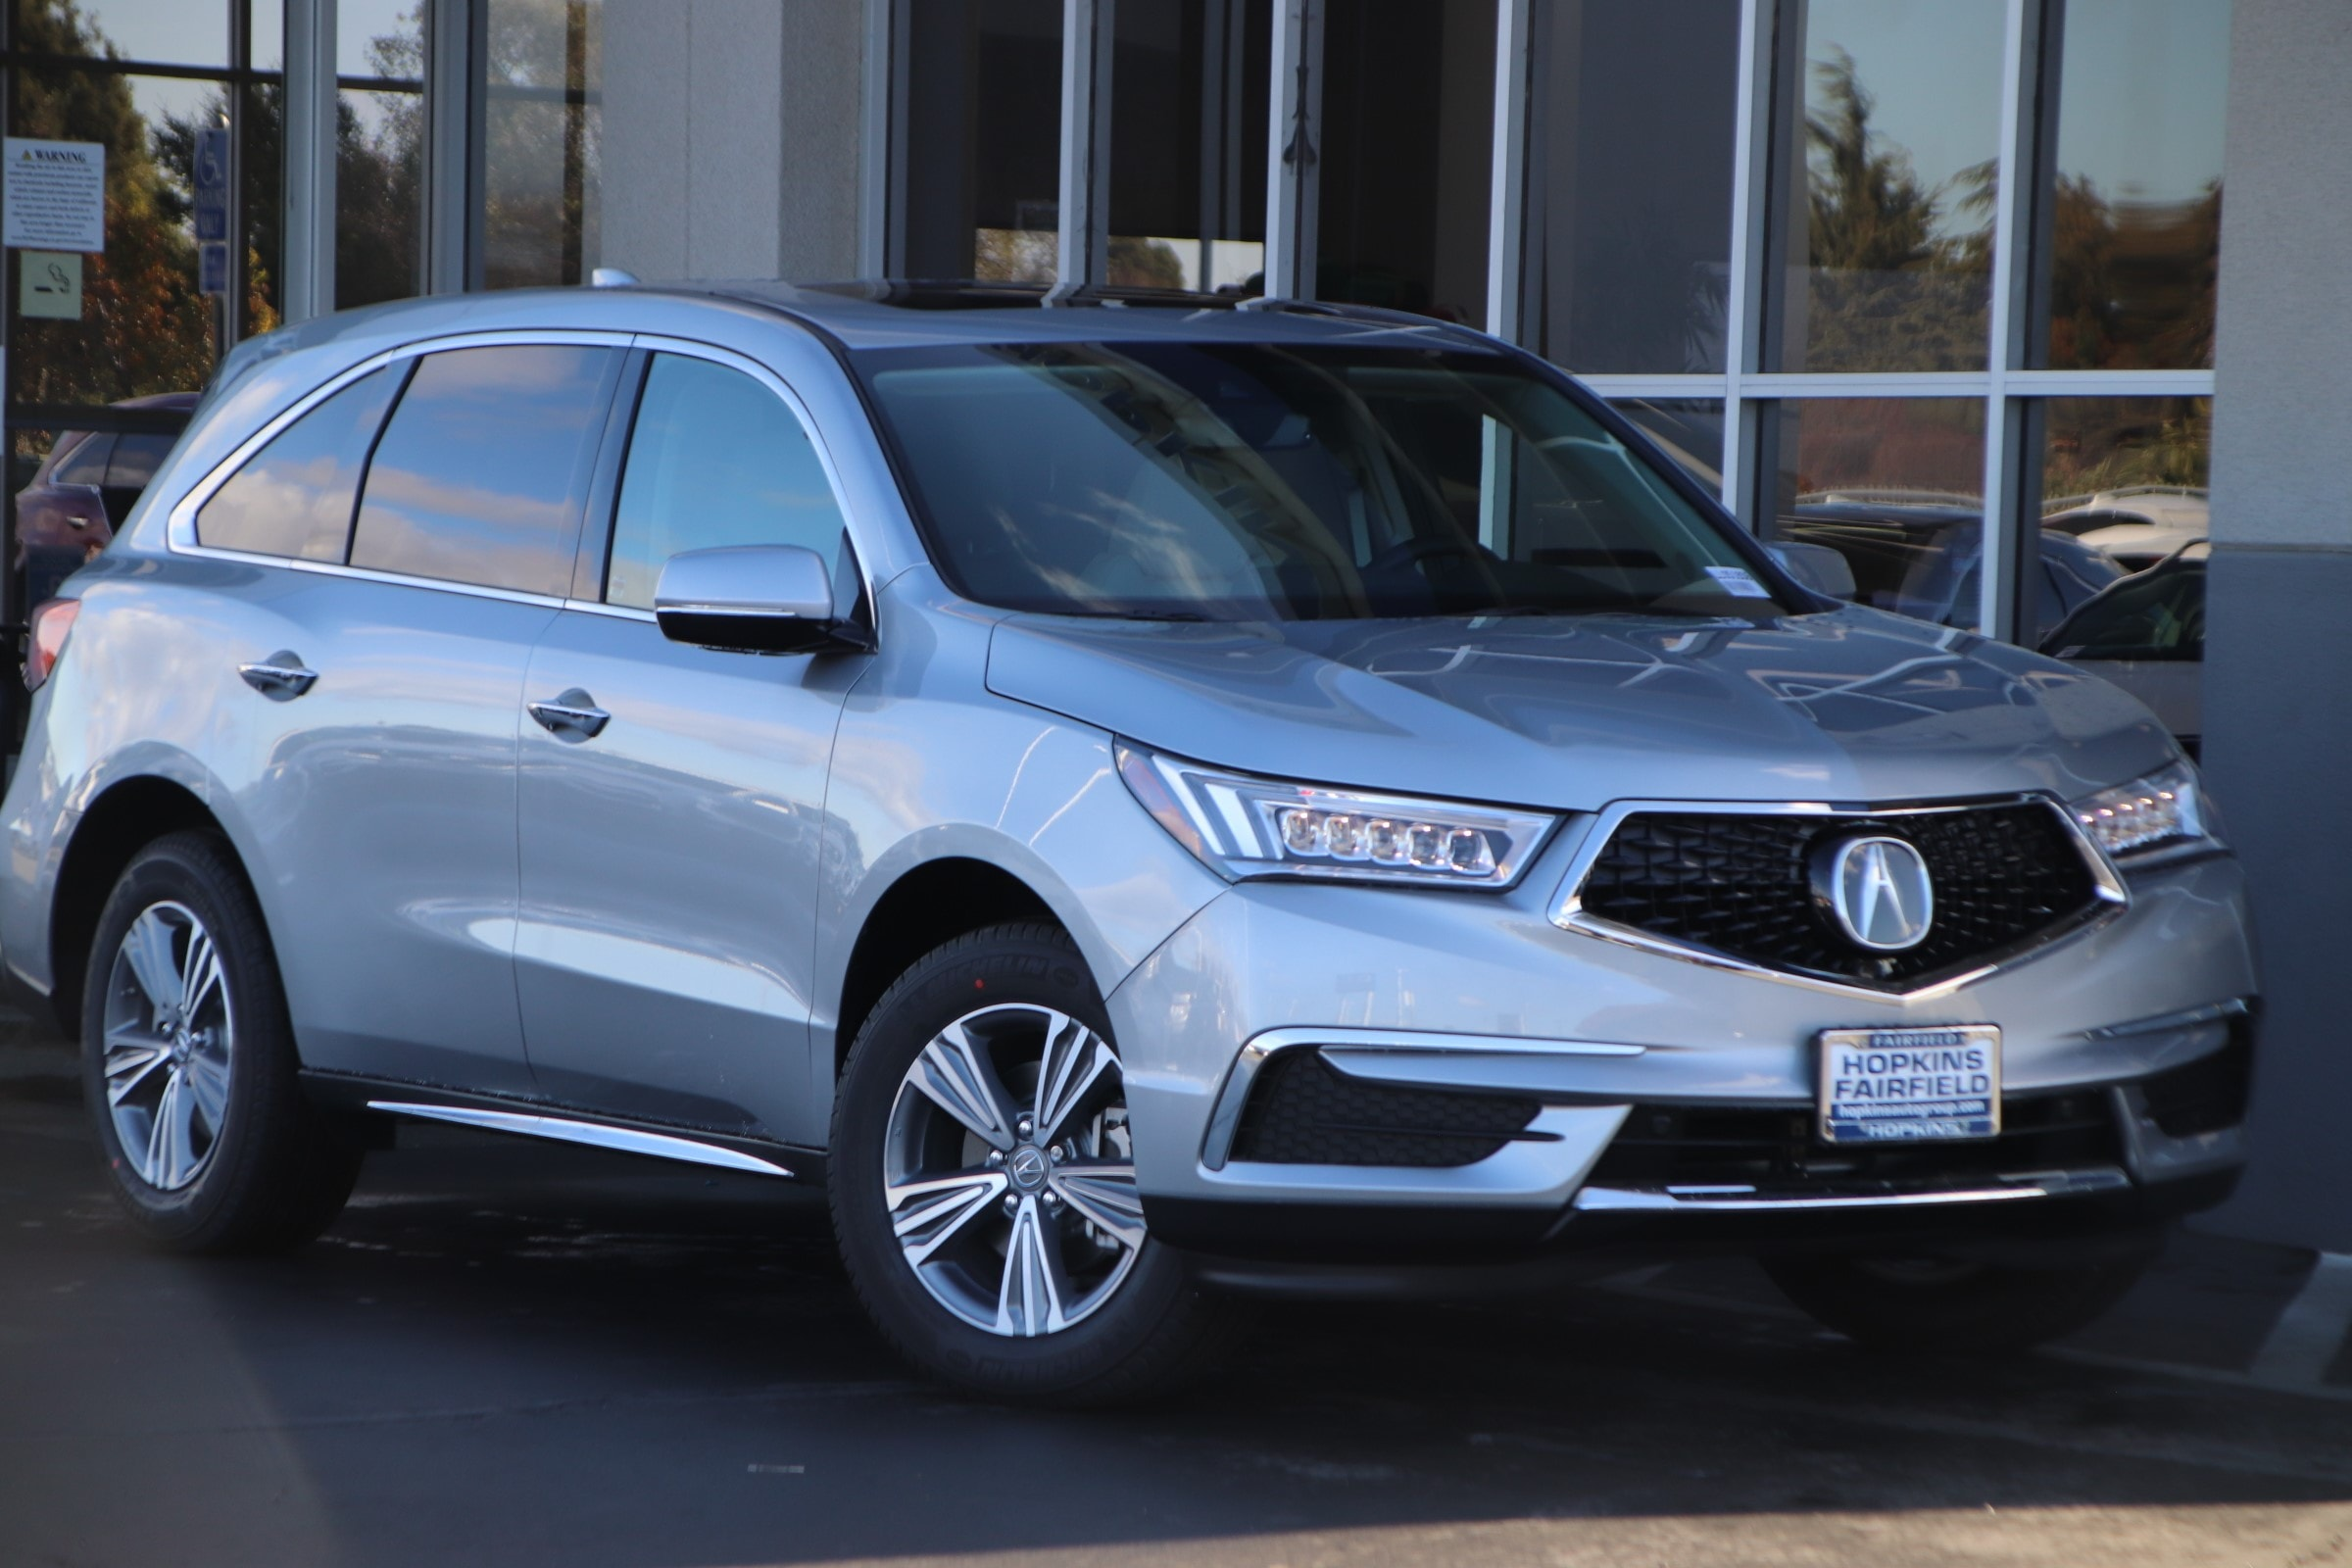 New 2020 Acura Mdx Sh Awd For Sale In Fairfield Ca Serving San Francisco Concord Napa 5j8yd4h32ll051856